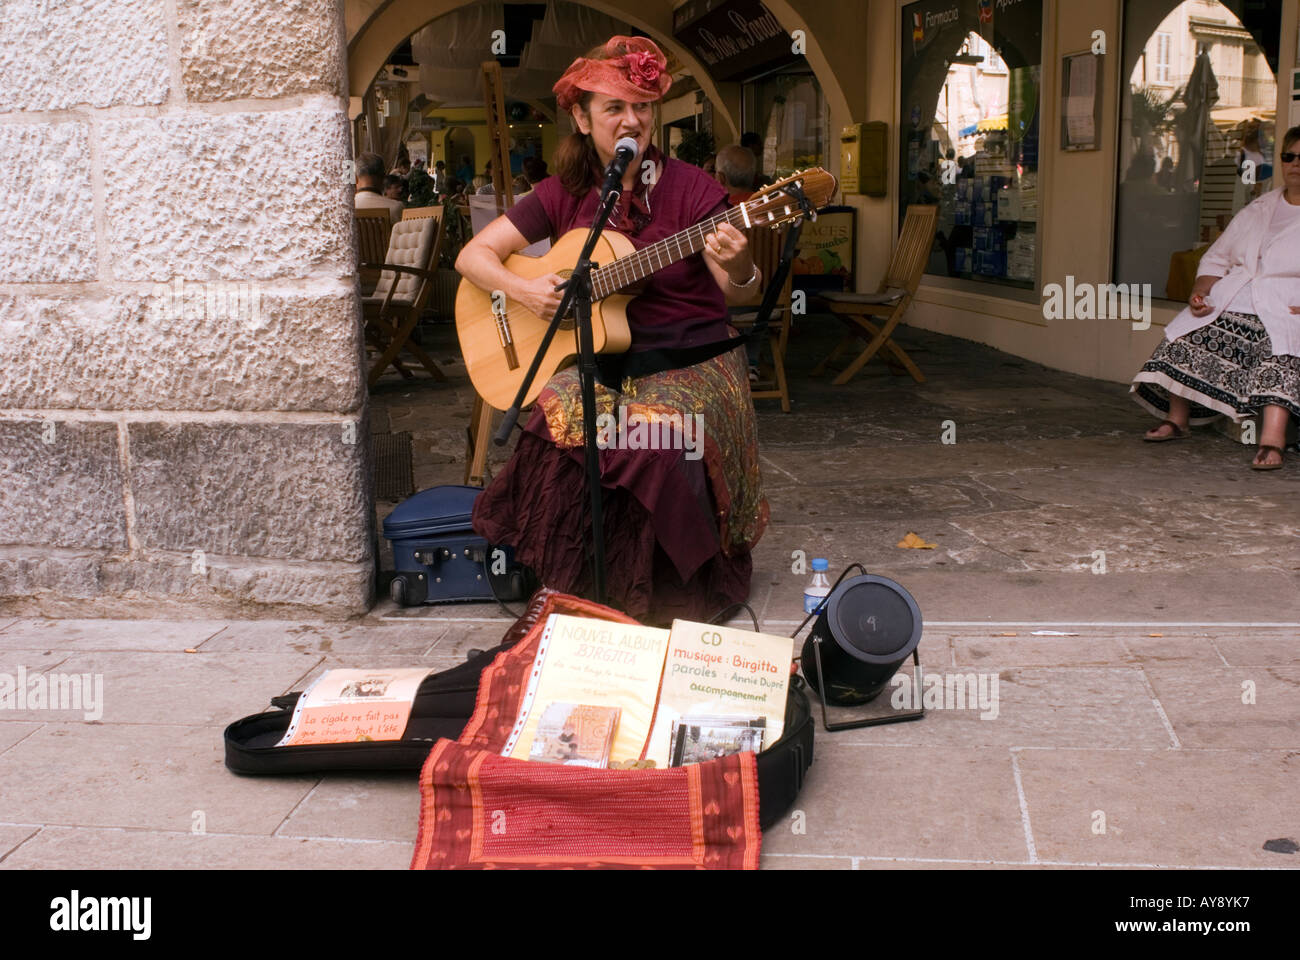 A French woman dressed in Provencal costume playing traditional French folk music. - Stock Image